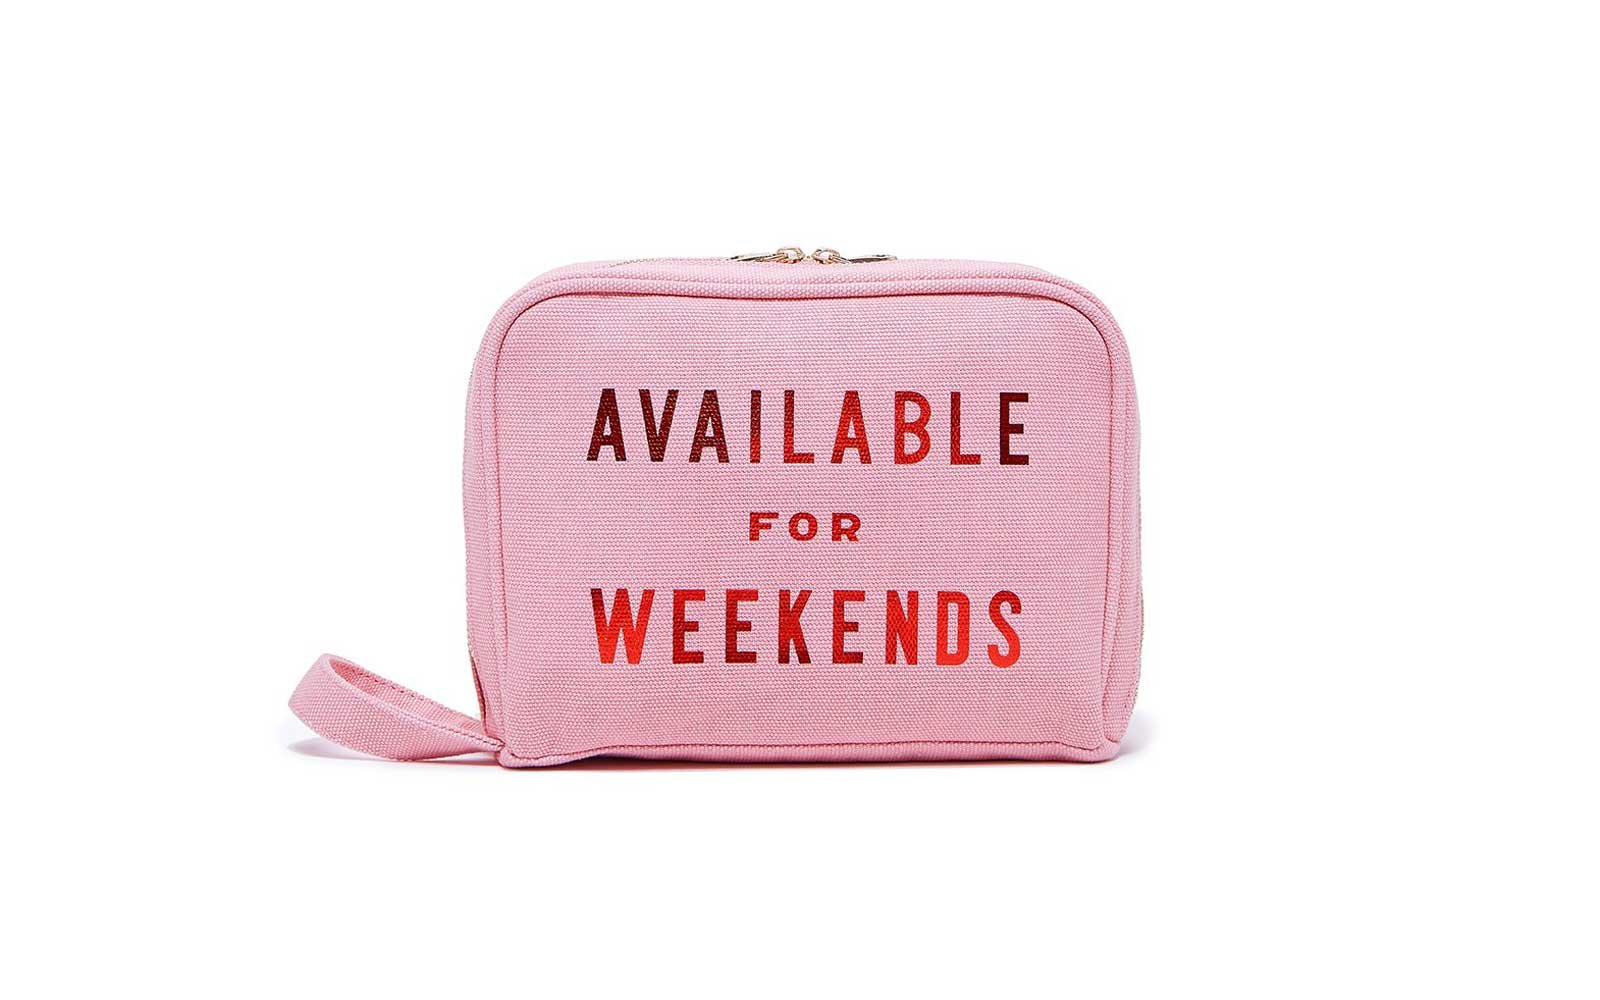 Toiletries Bag - Available for Weekends